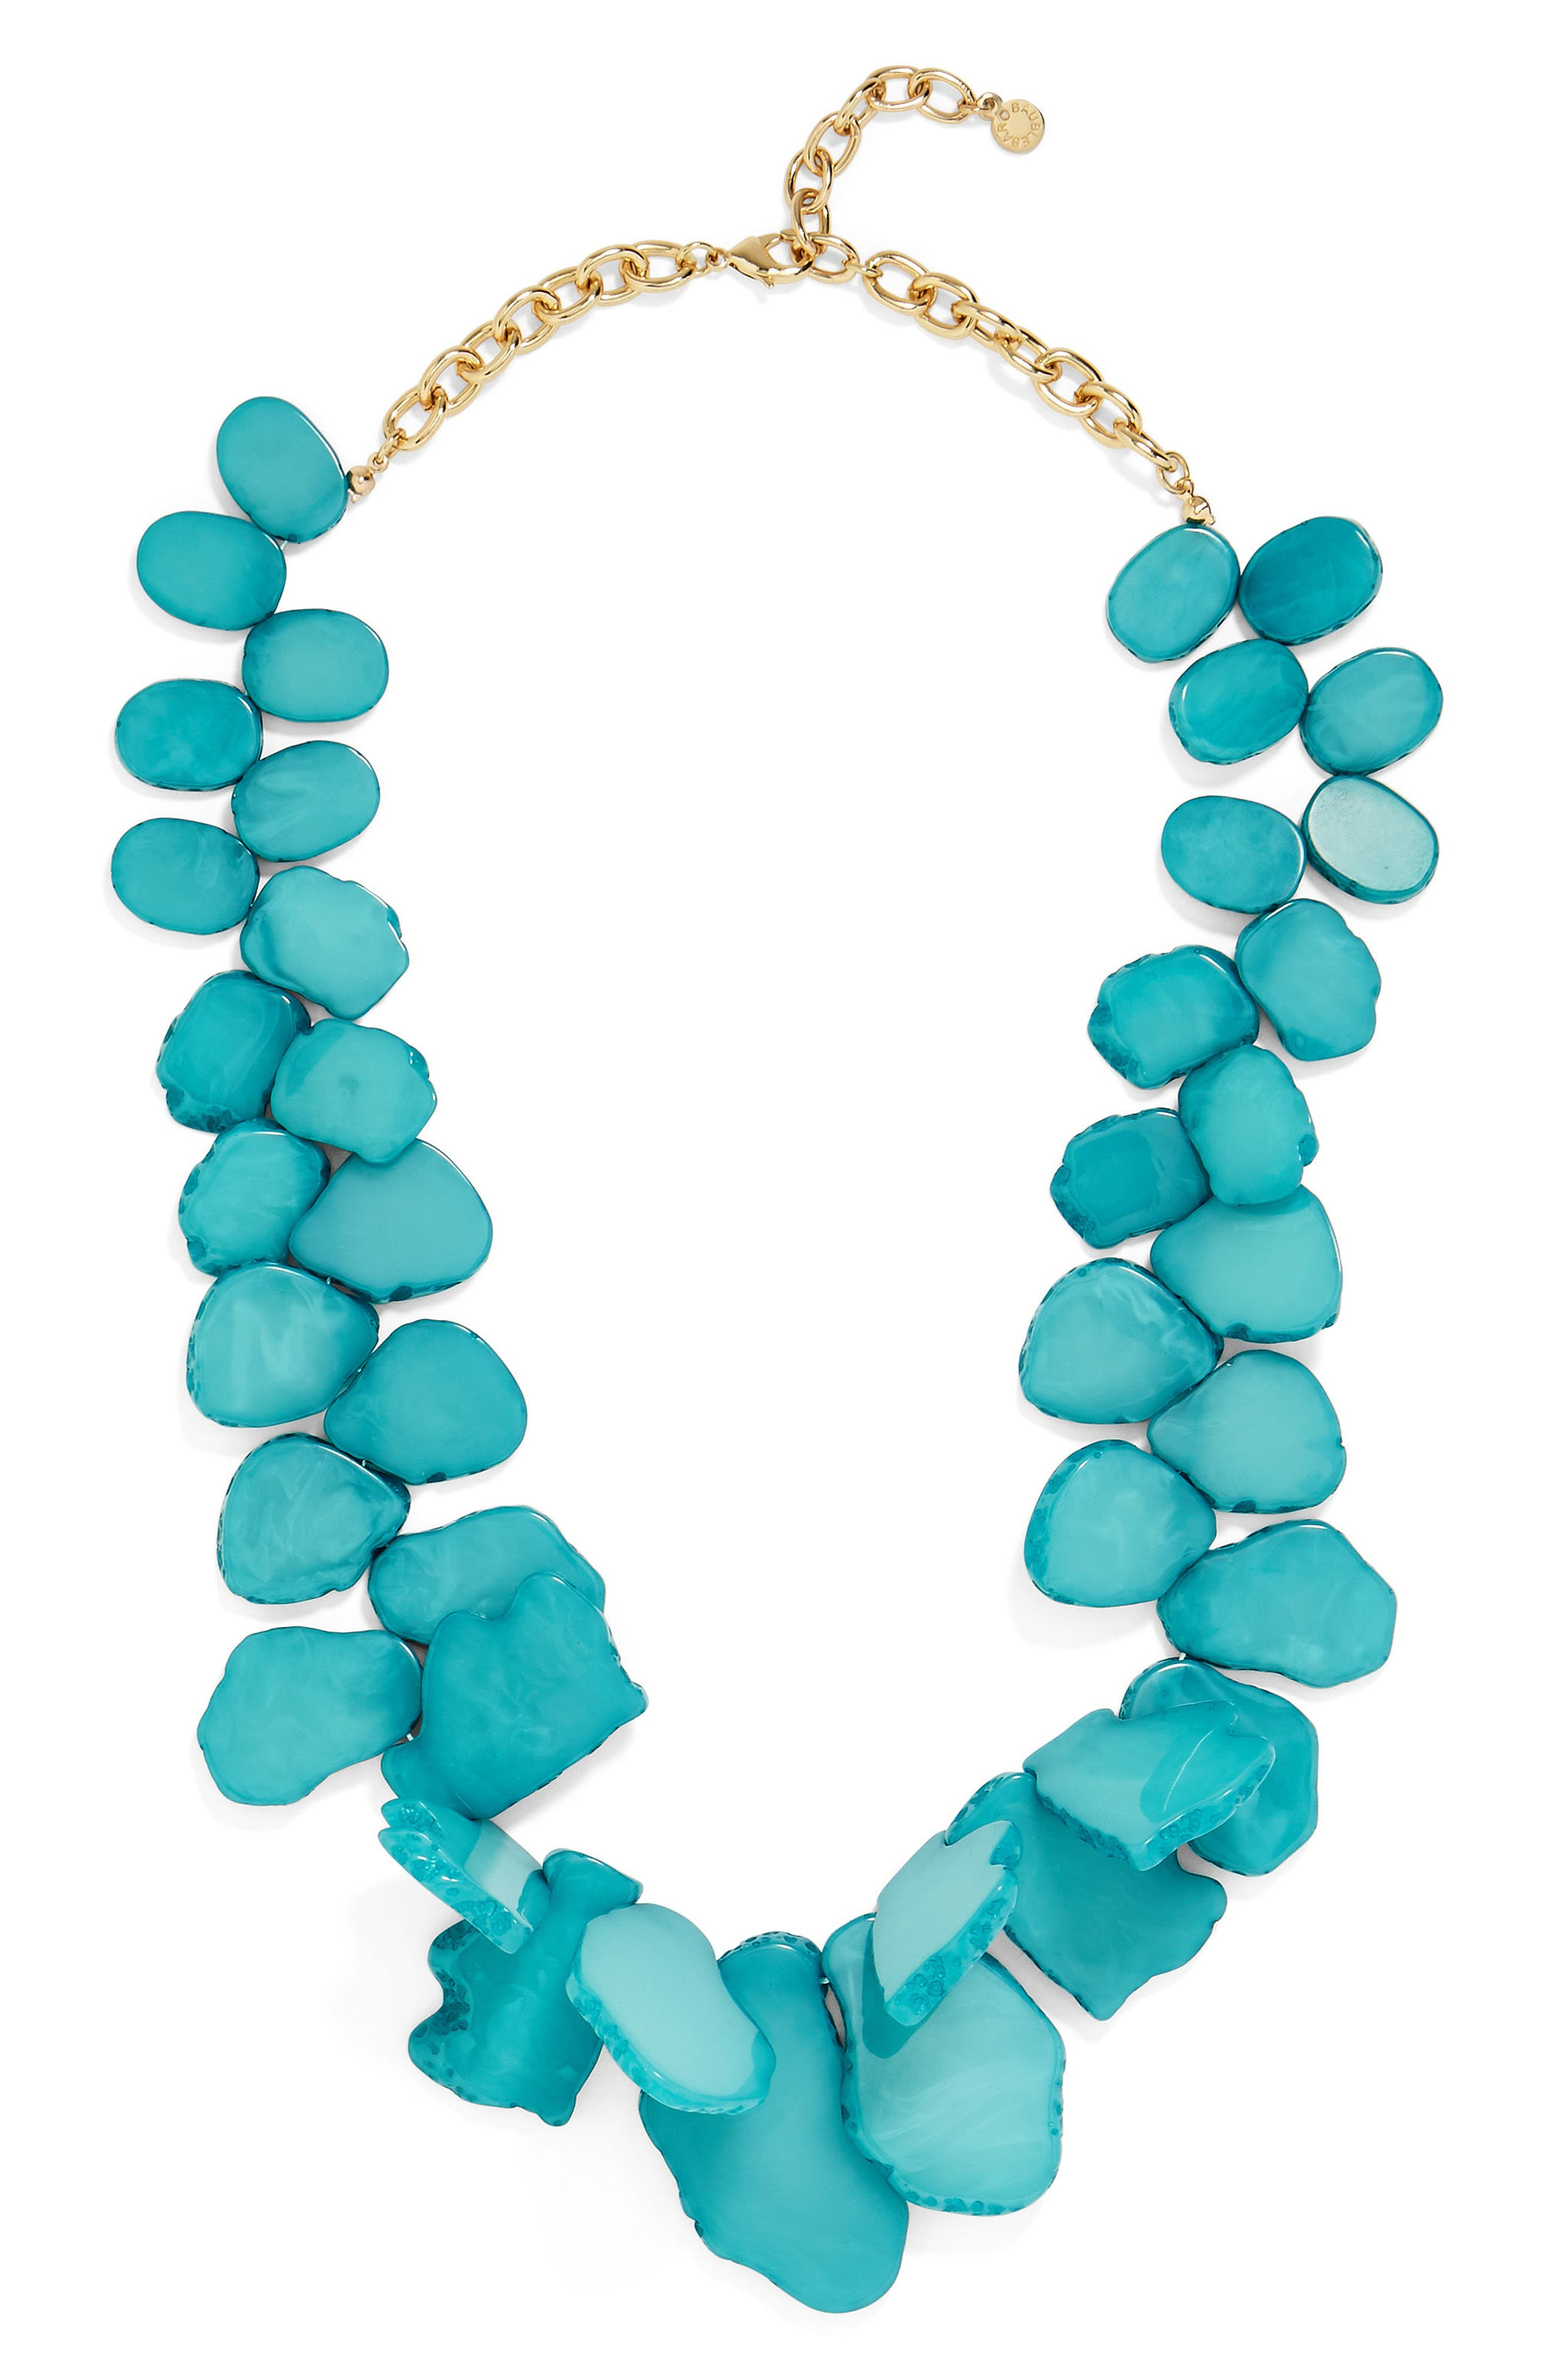 Main Image - BaubleBar 'Seaglass' Bib Necklace